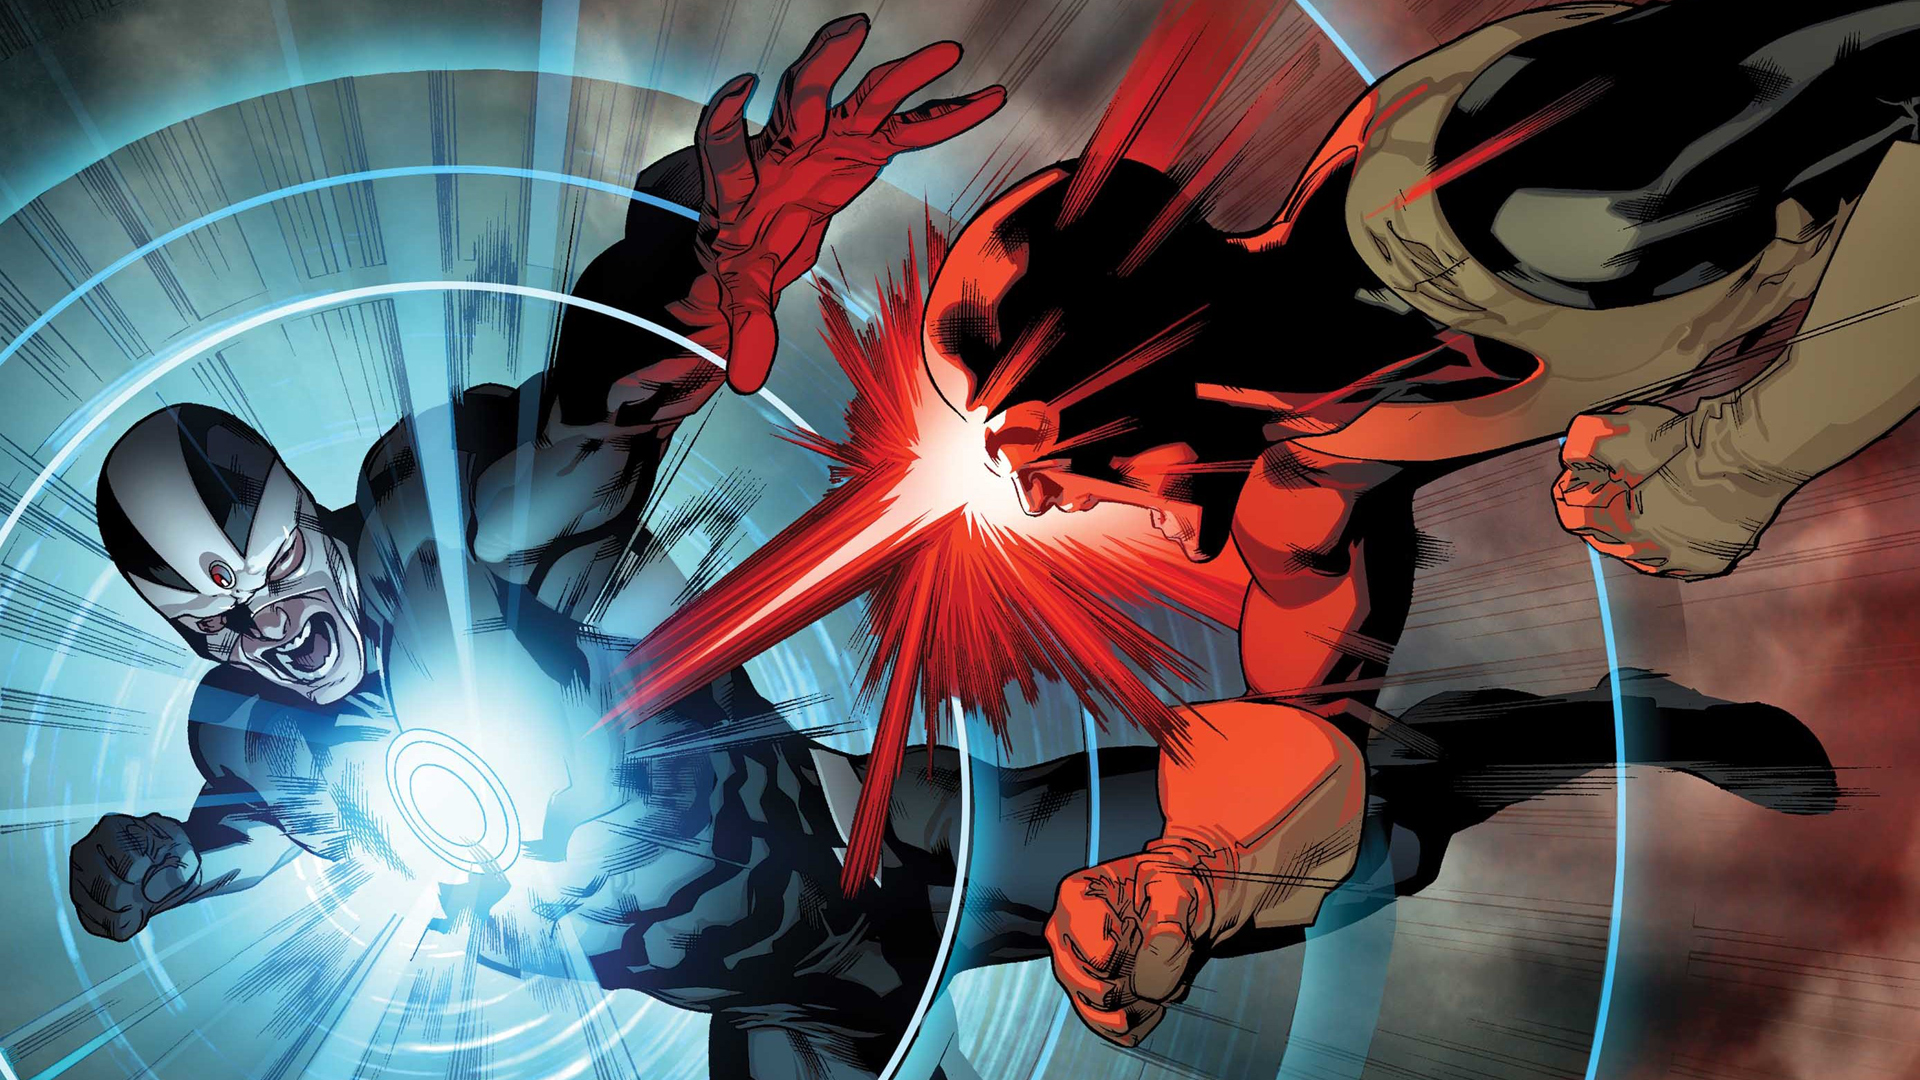 Top Wallpaper Marvel Xmen - 7afc8226036e96c8c798d2ee8755ebfc  Perfect Image Reference_11569.jpg